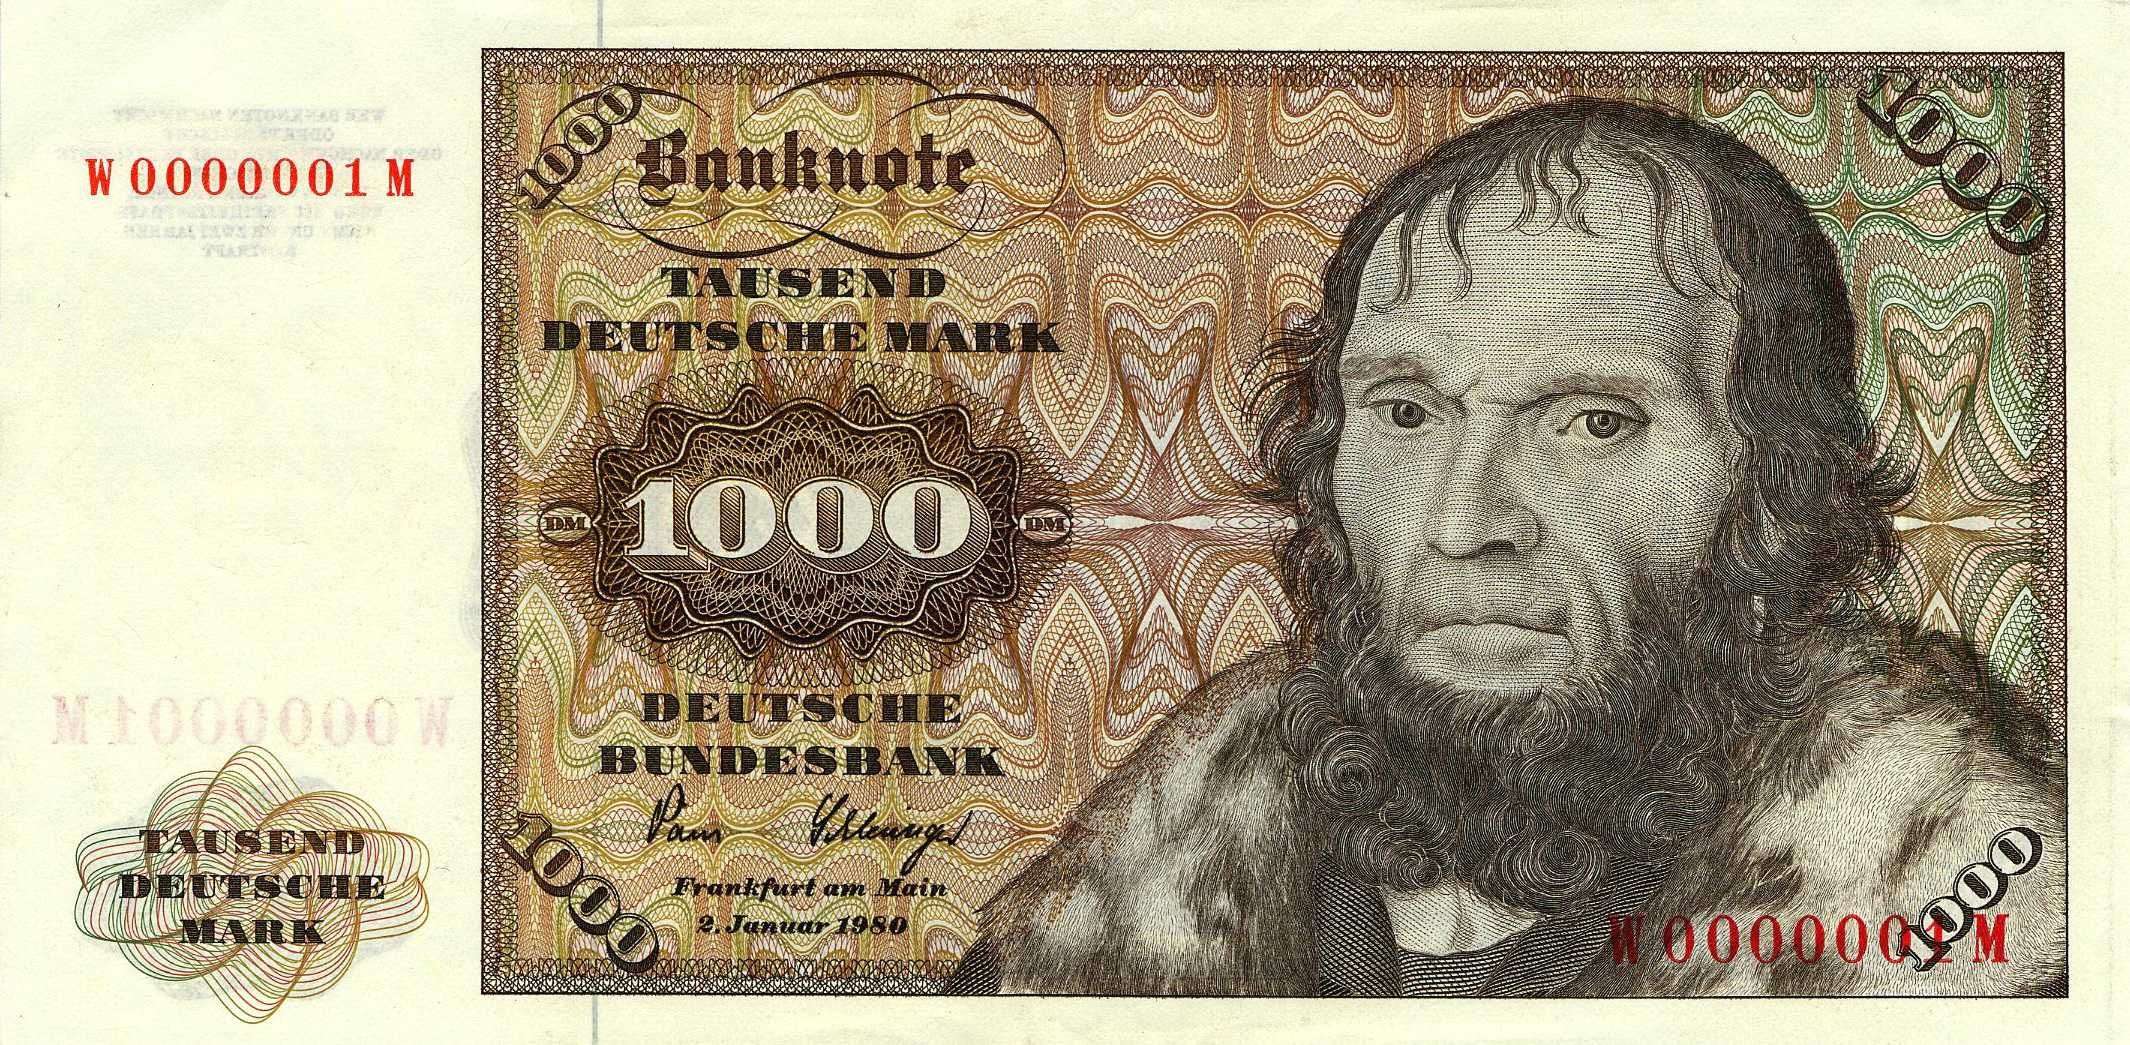 Banknote 1000 Deutsche Mark 1980 Schoner Bank notes